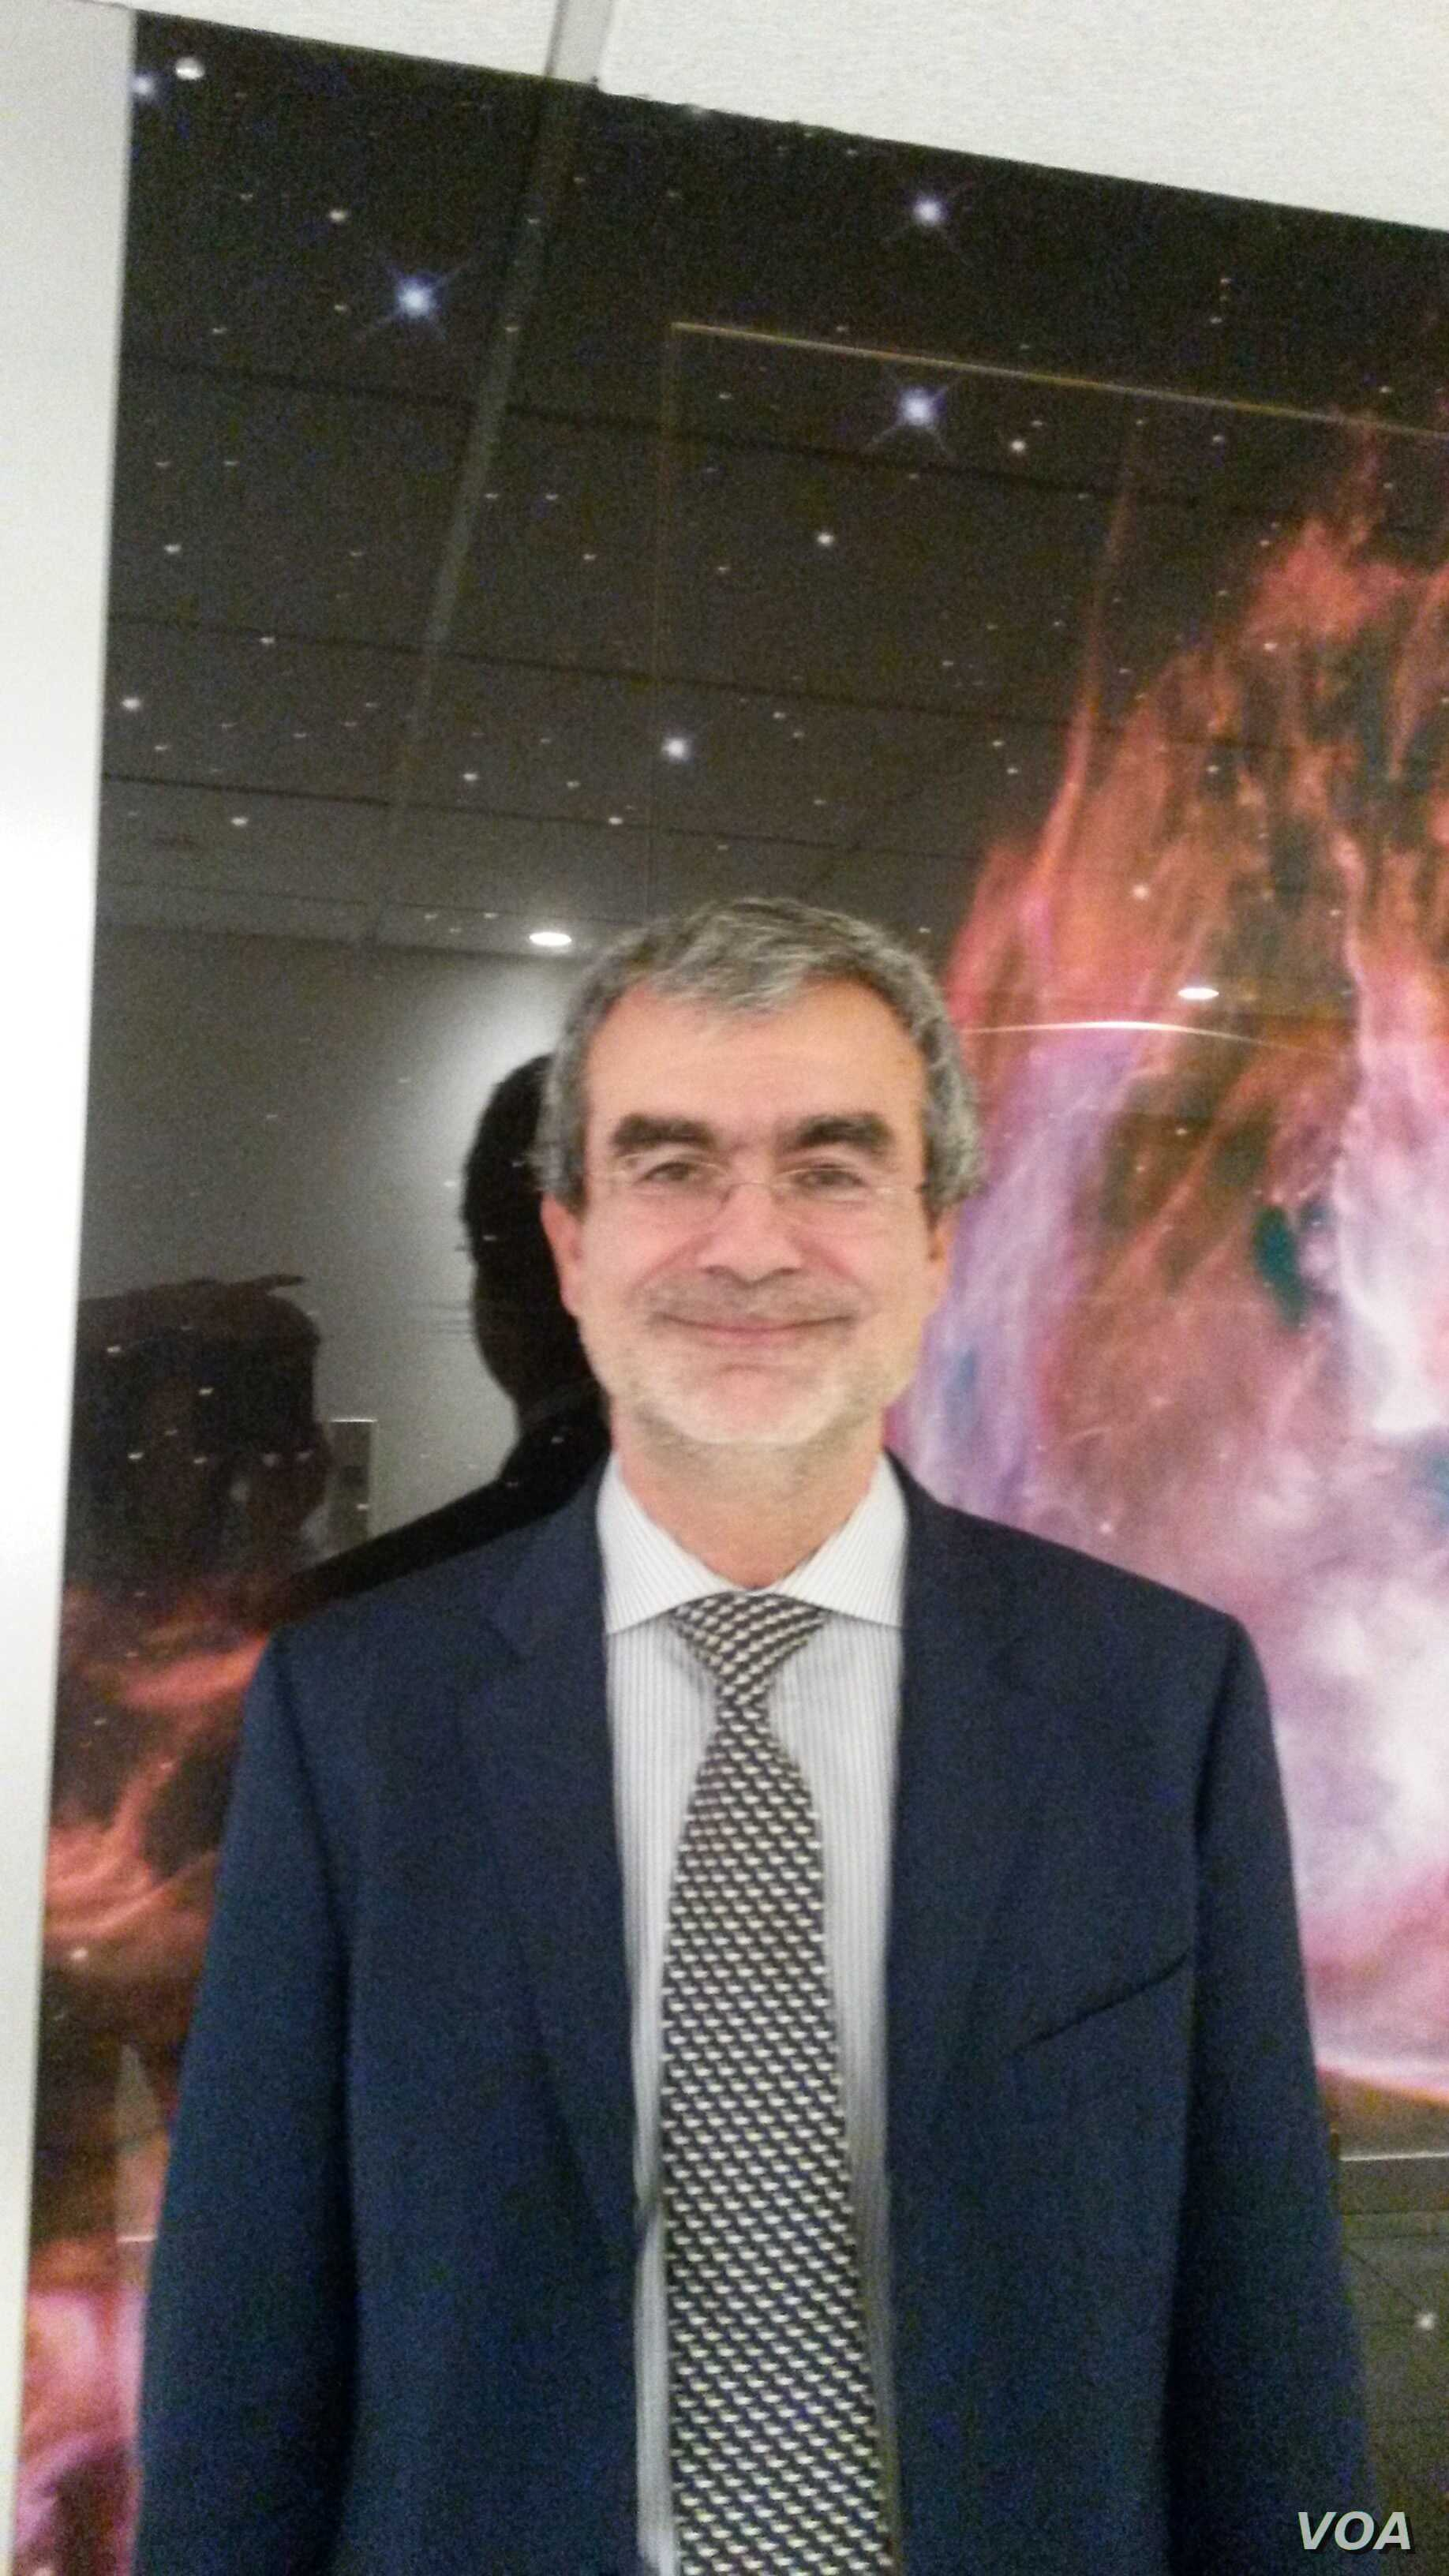 """If there is life on Mars, says Fabio Favata, coordinator of the European Space Agency's science and robotics exploration program, """"it would most likely be underground."""" (L. Bryant/VOA)"""